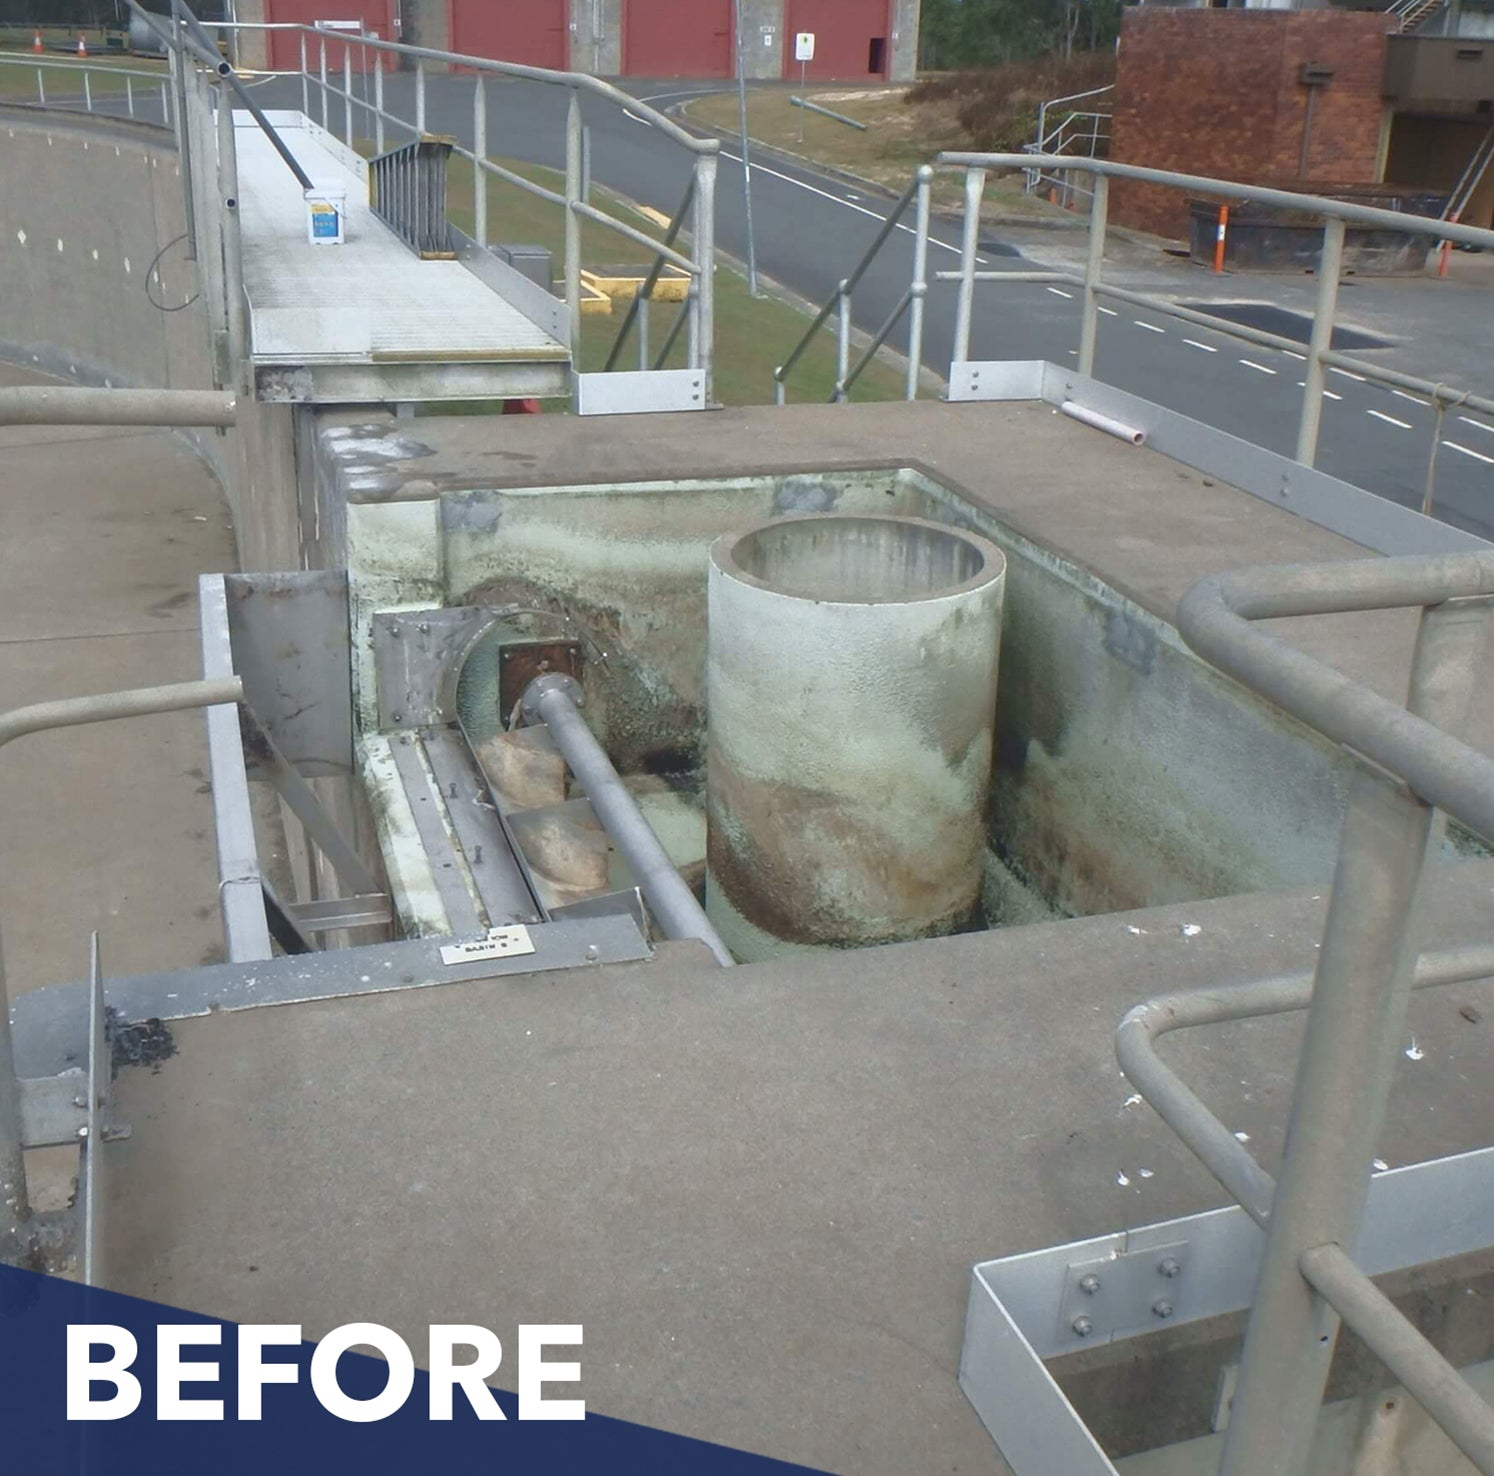 Before Utilities Upgrading and Maintenance by Mass Products